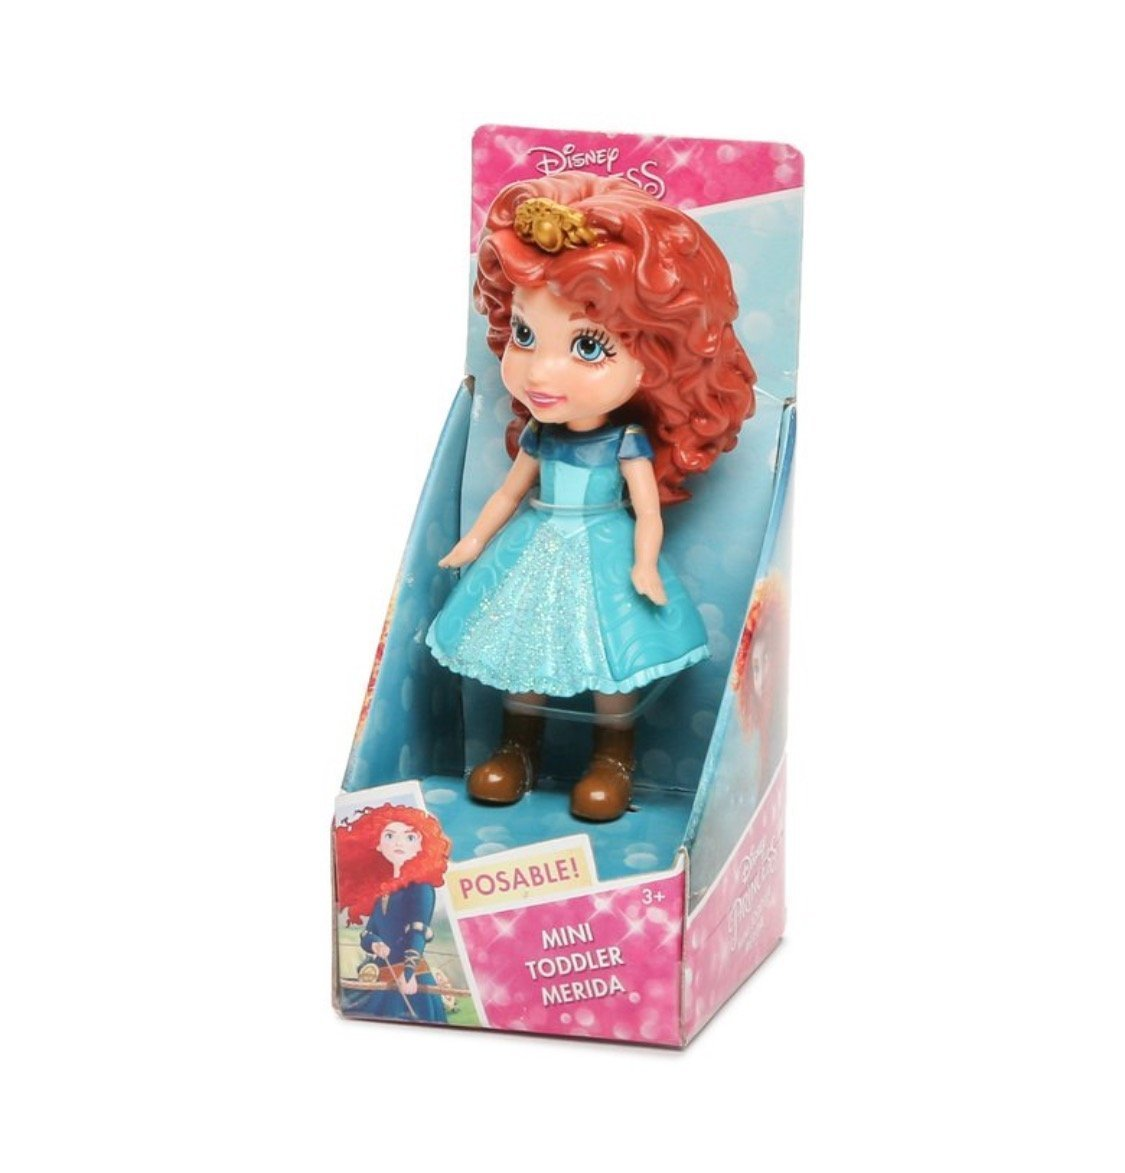 Disney My First Princess Mini Toddler Doll ~ Merida, 3 Mini Toddler Merida Doll By Jakks